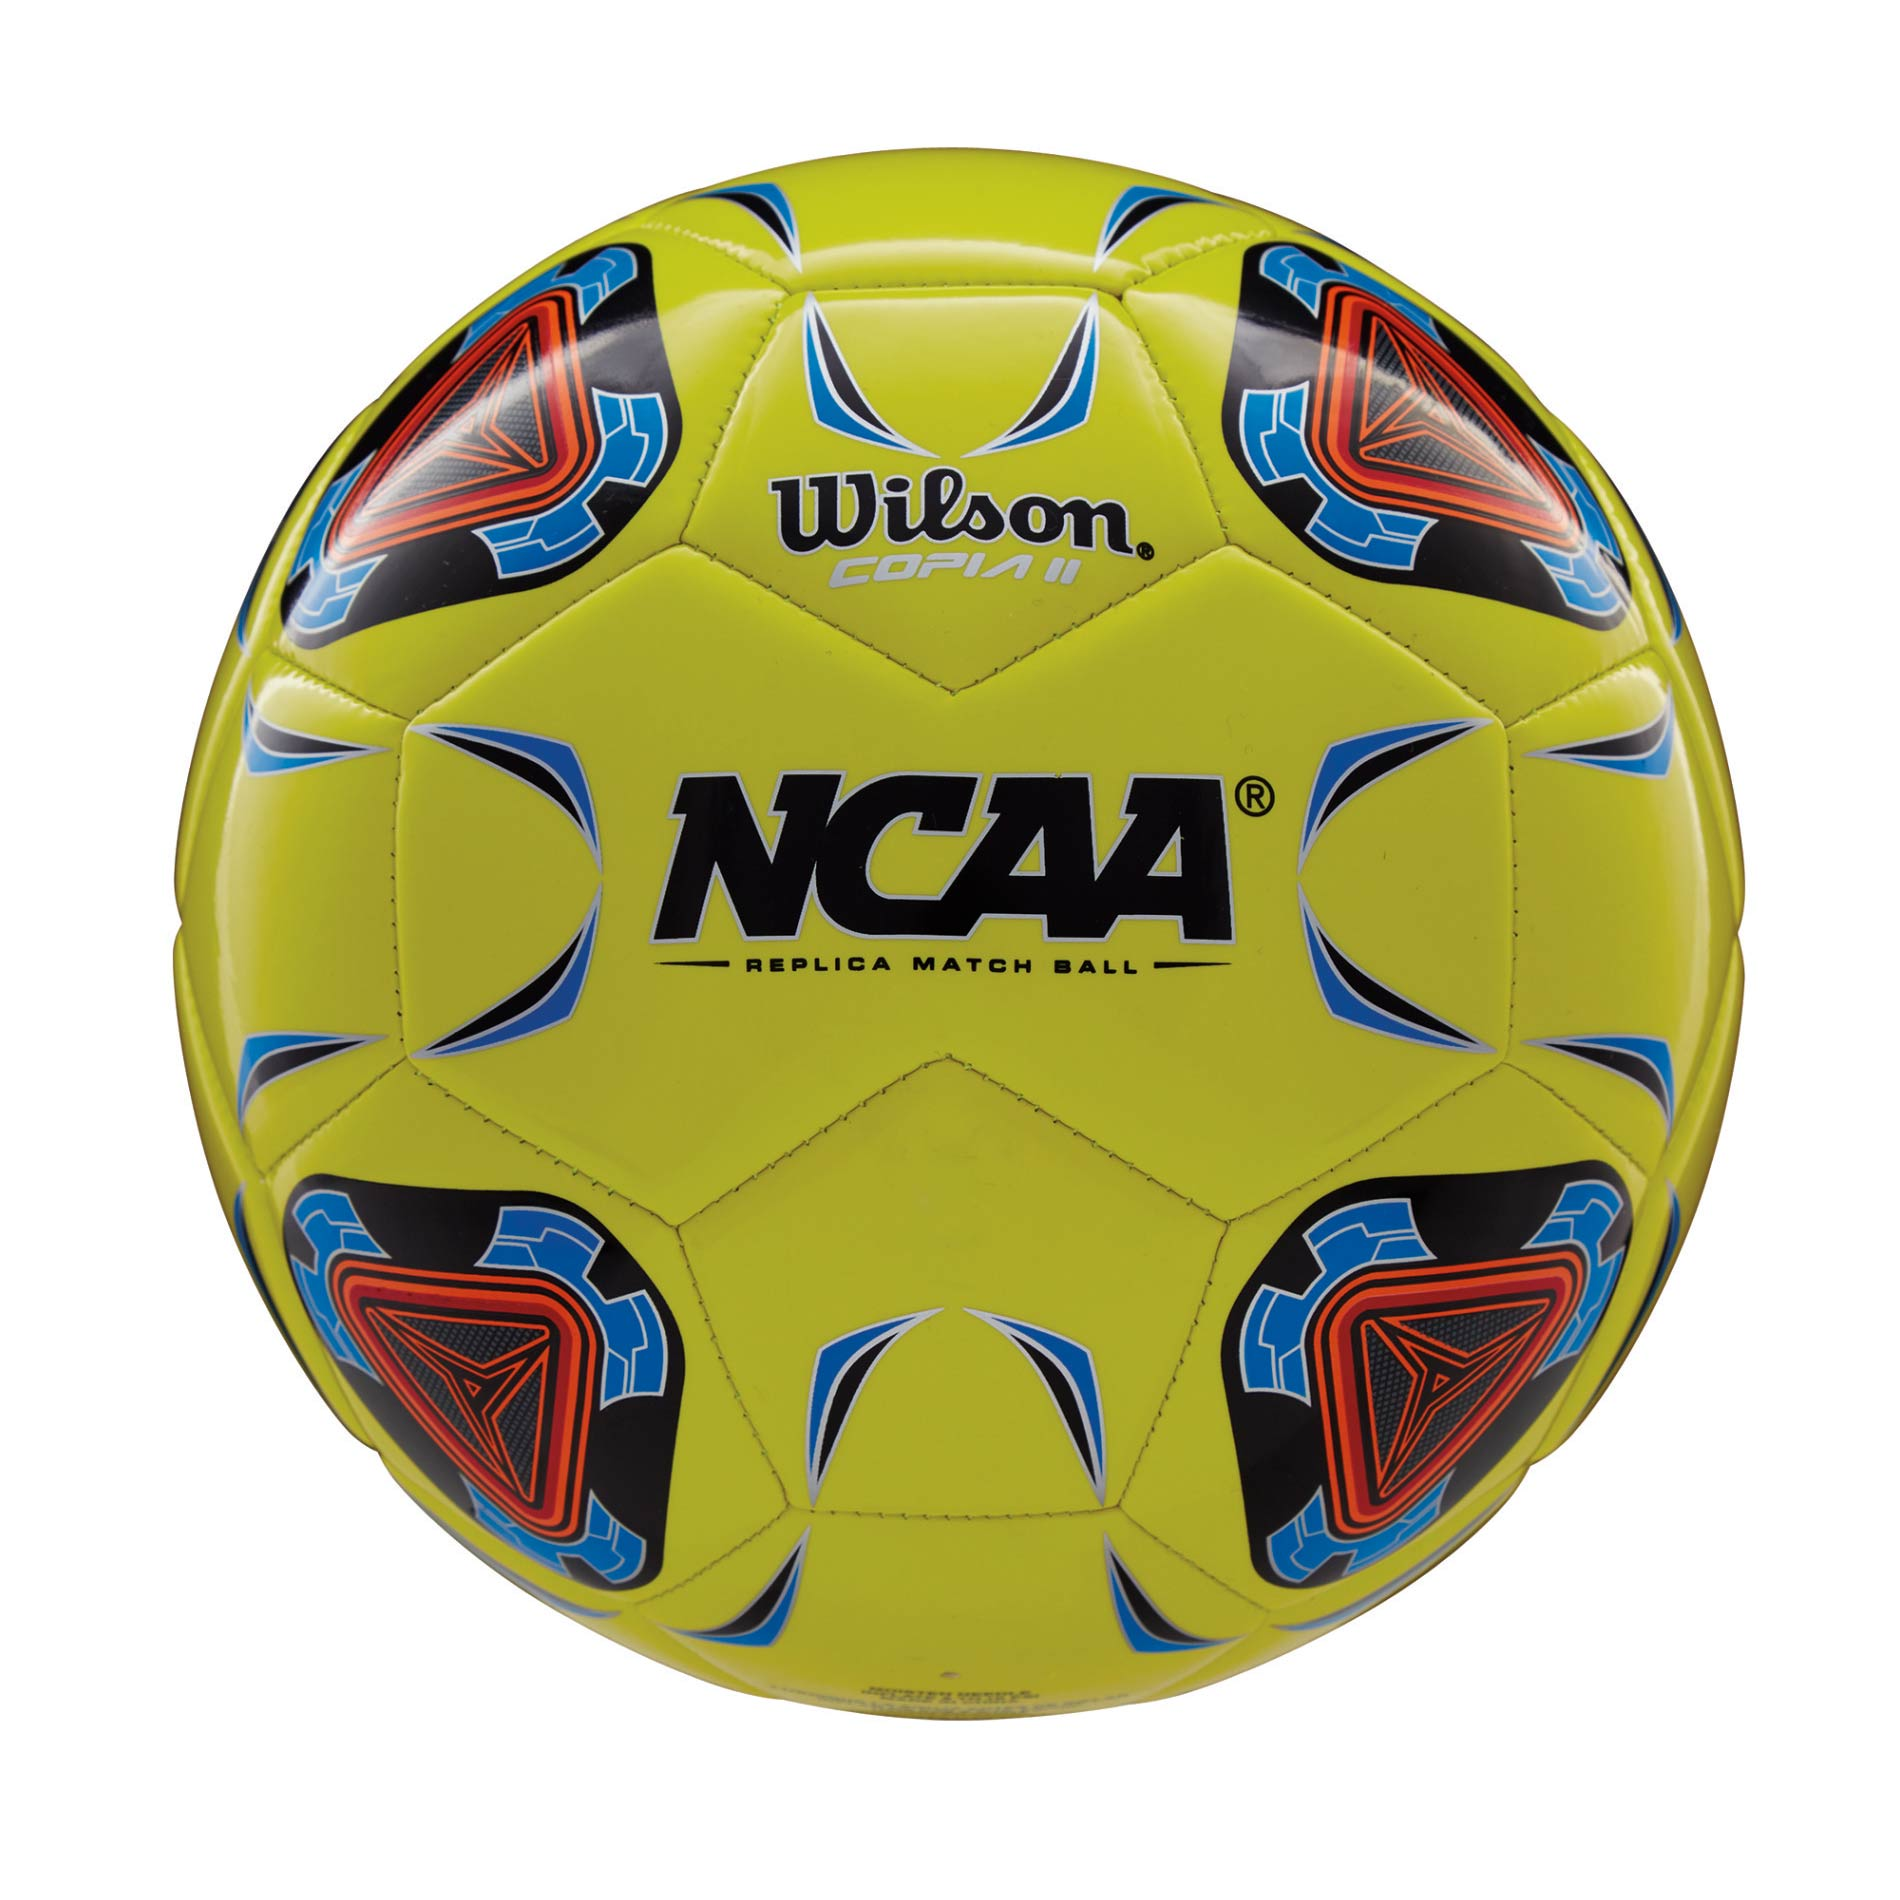 Wilson NCAA Copia II Soccer Ball (4) Optic Yellow - Blue